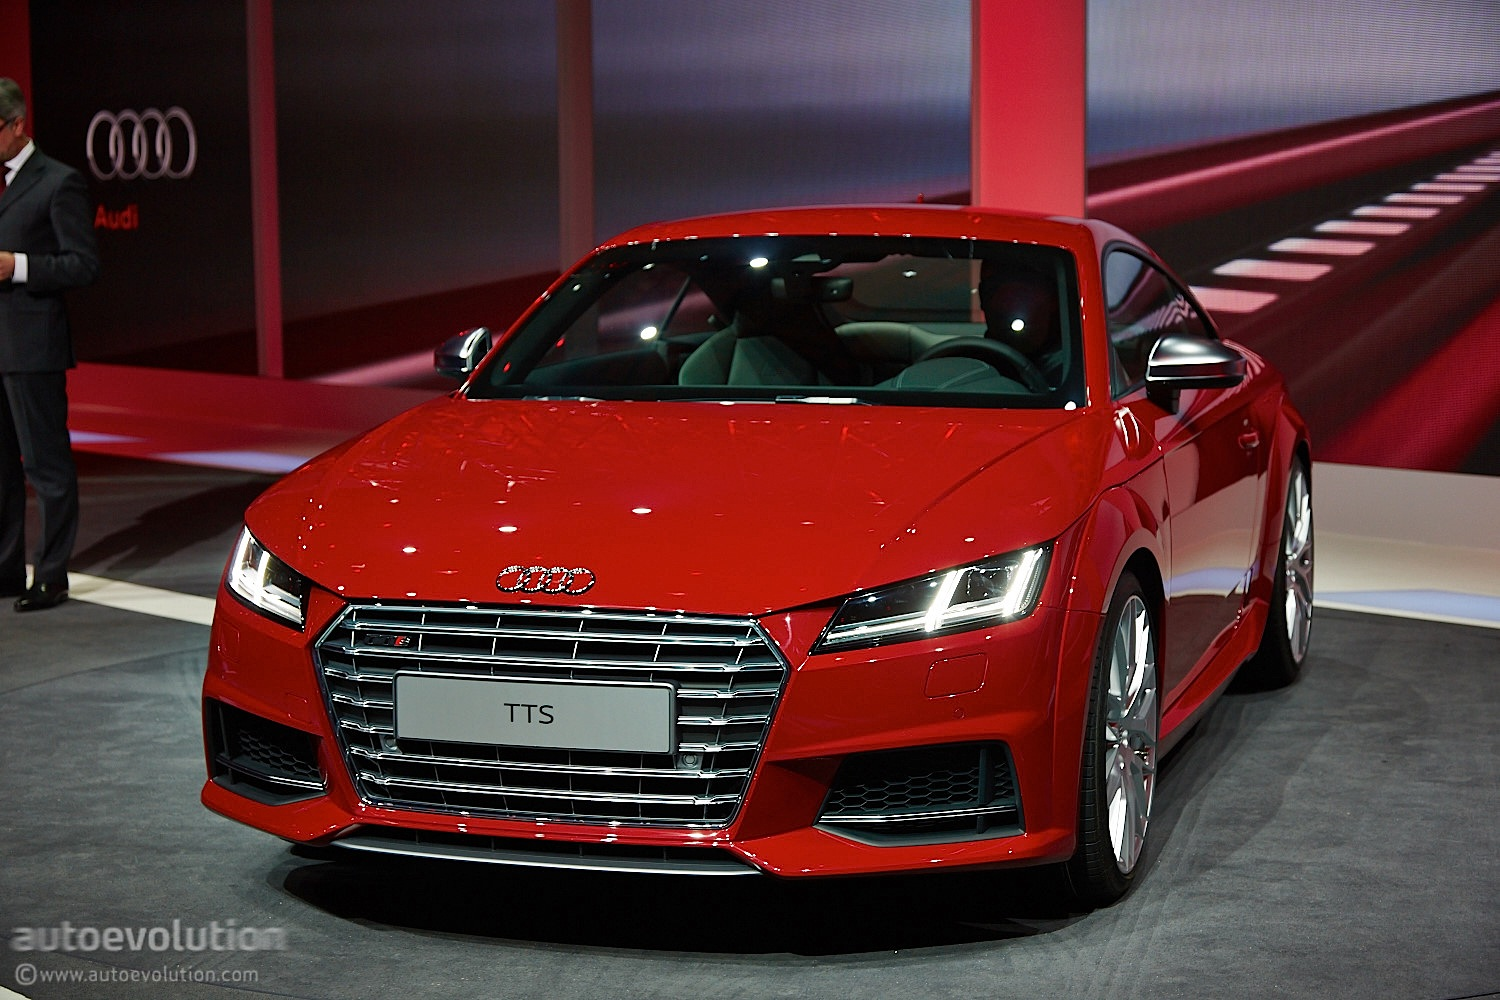 New Audi TTS Priced at €49,100 in Germany – the Most ...